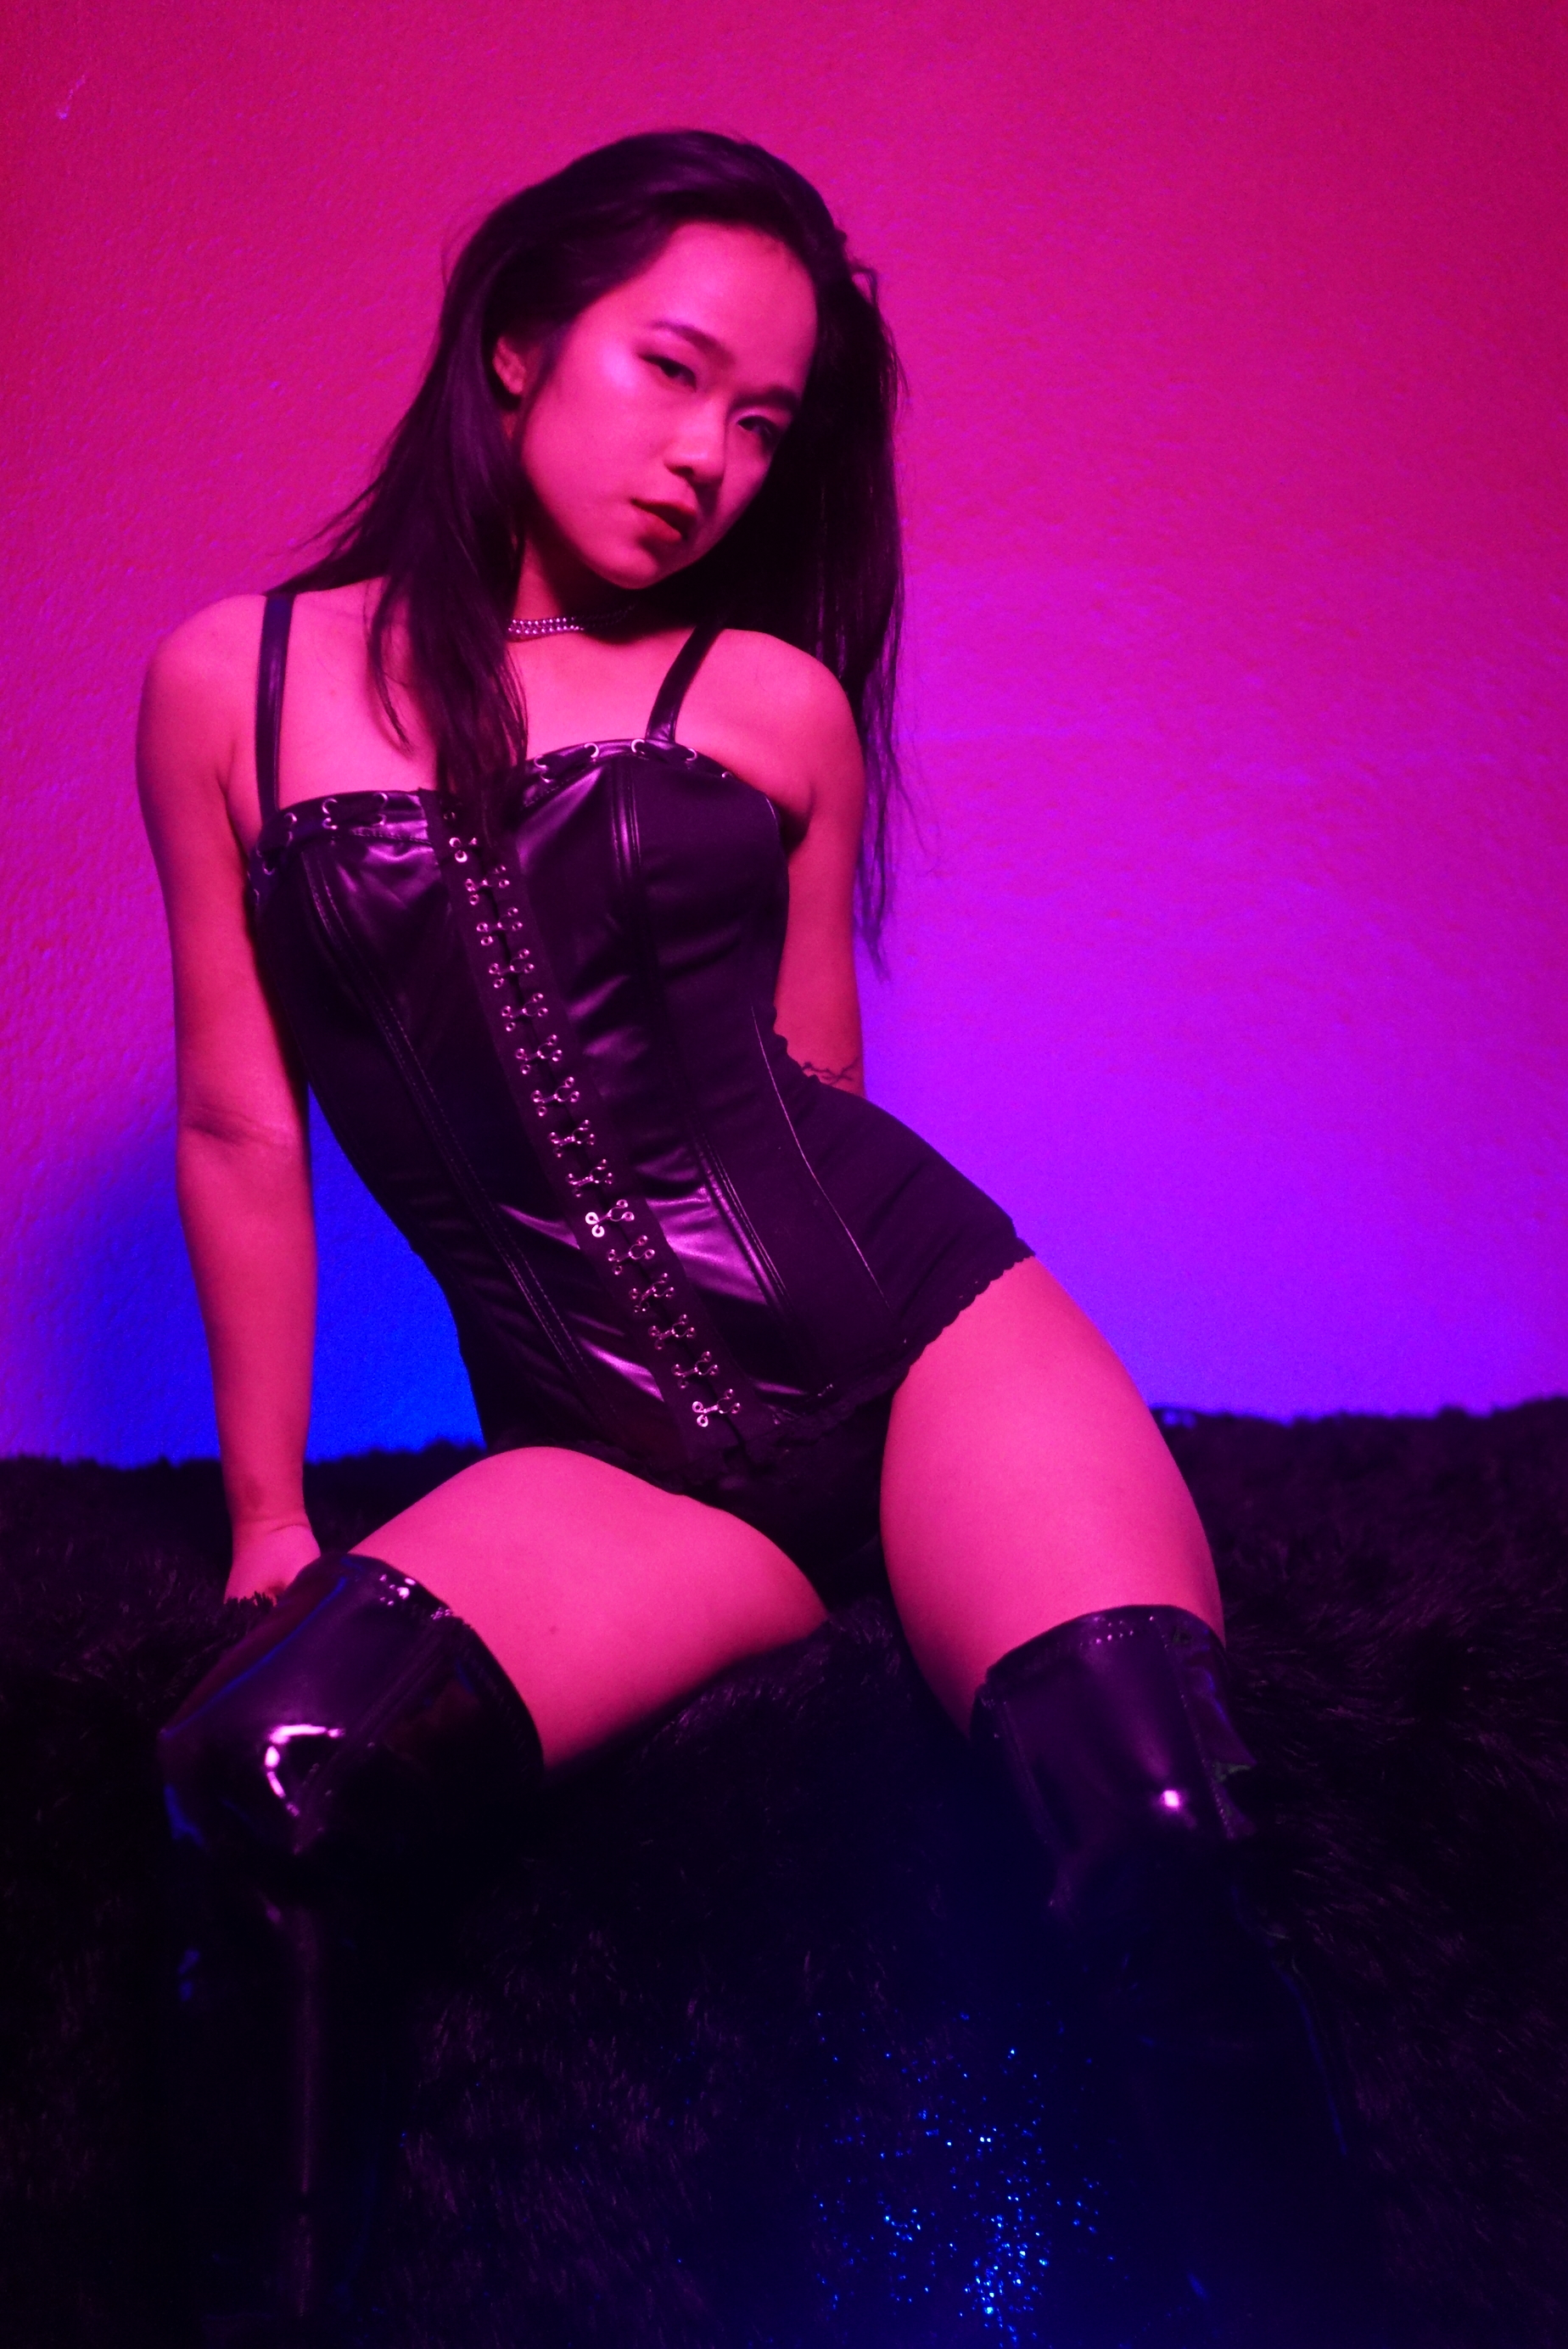 New York pro dominatrix Empress Wu